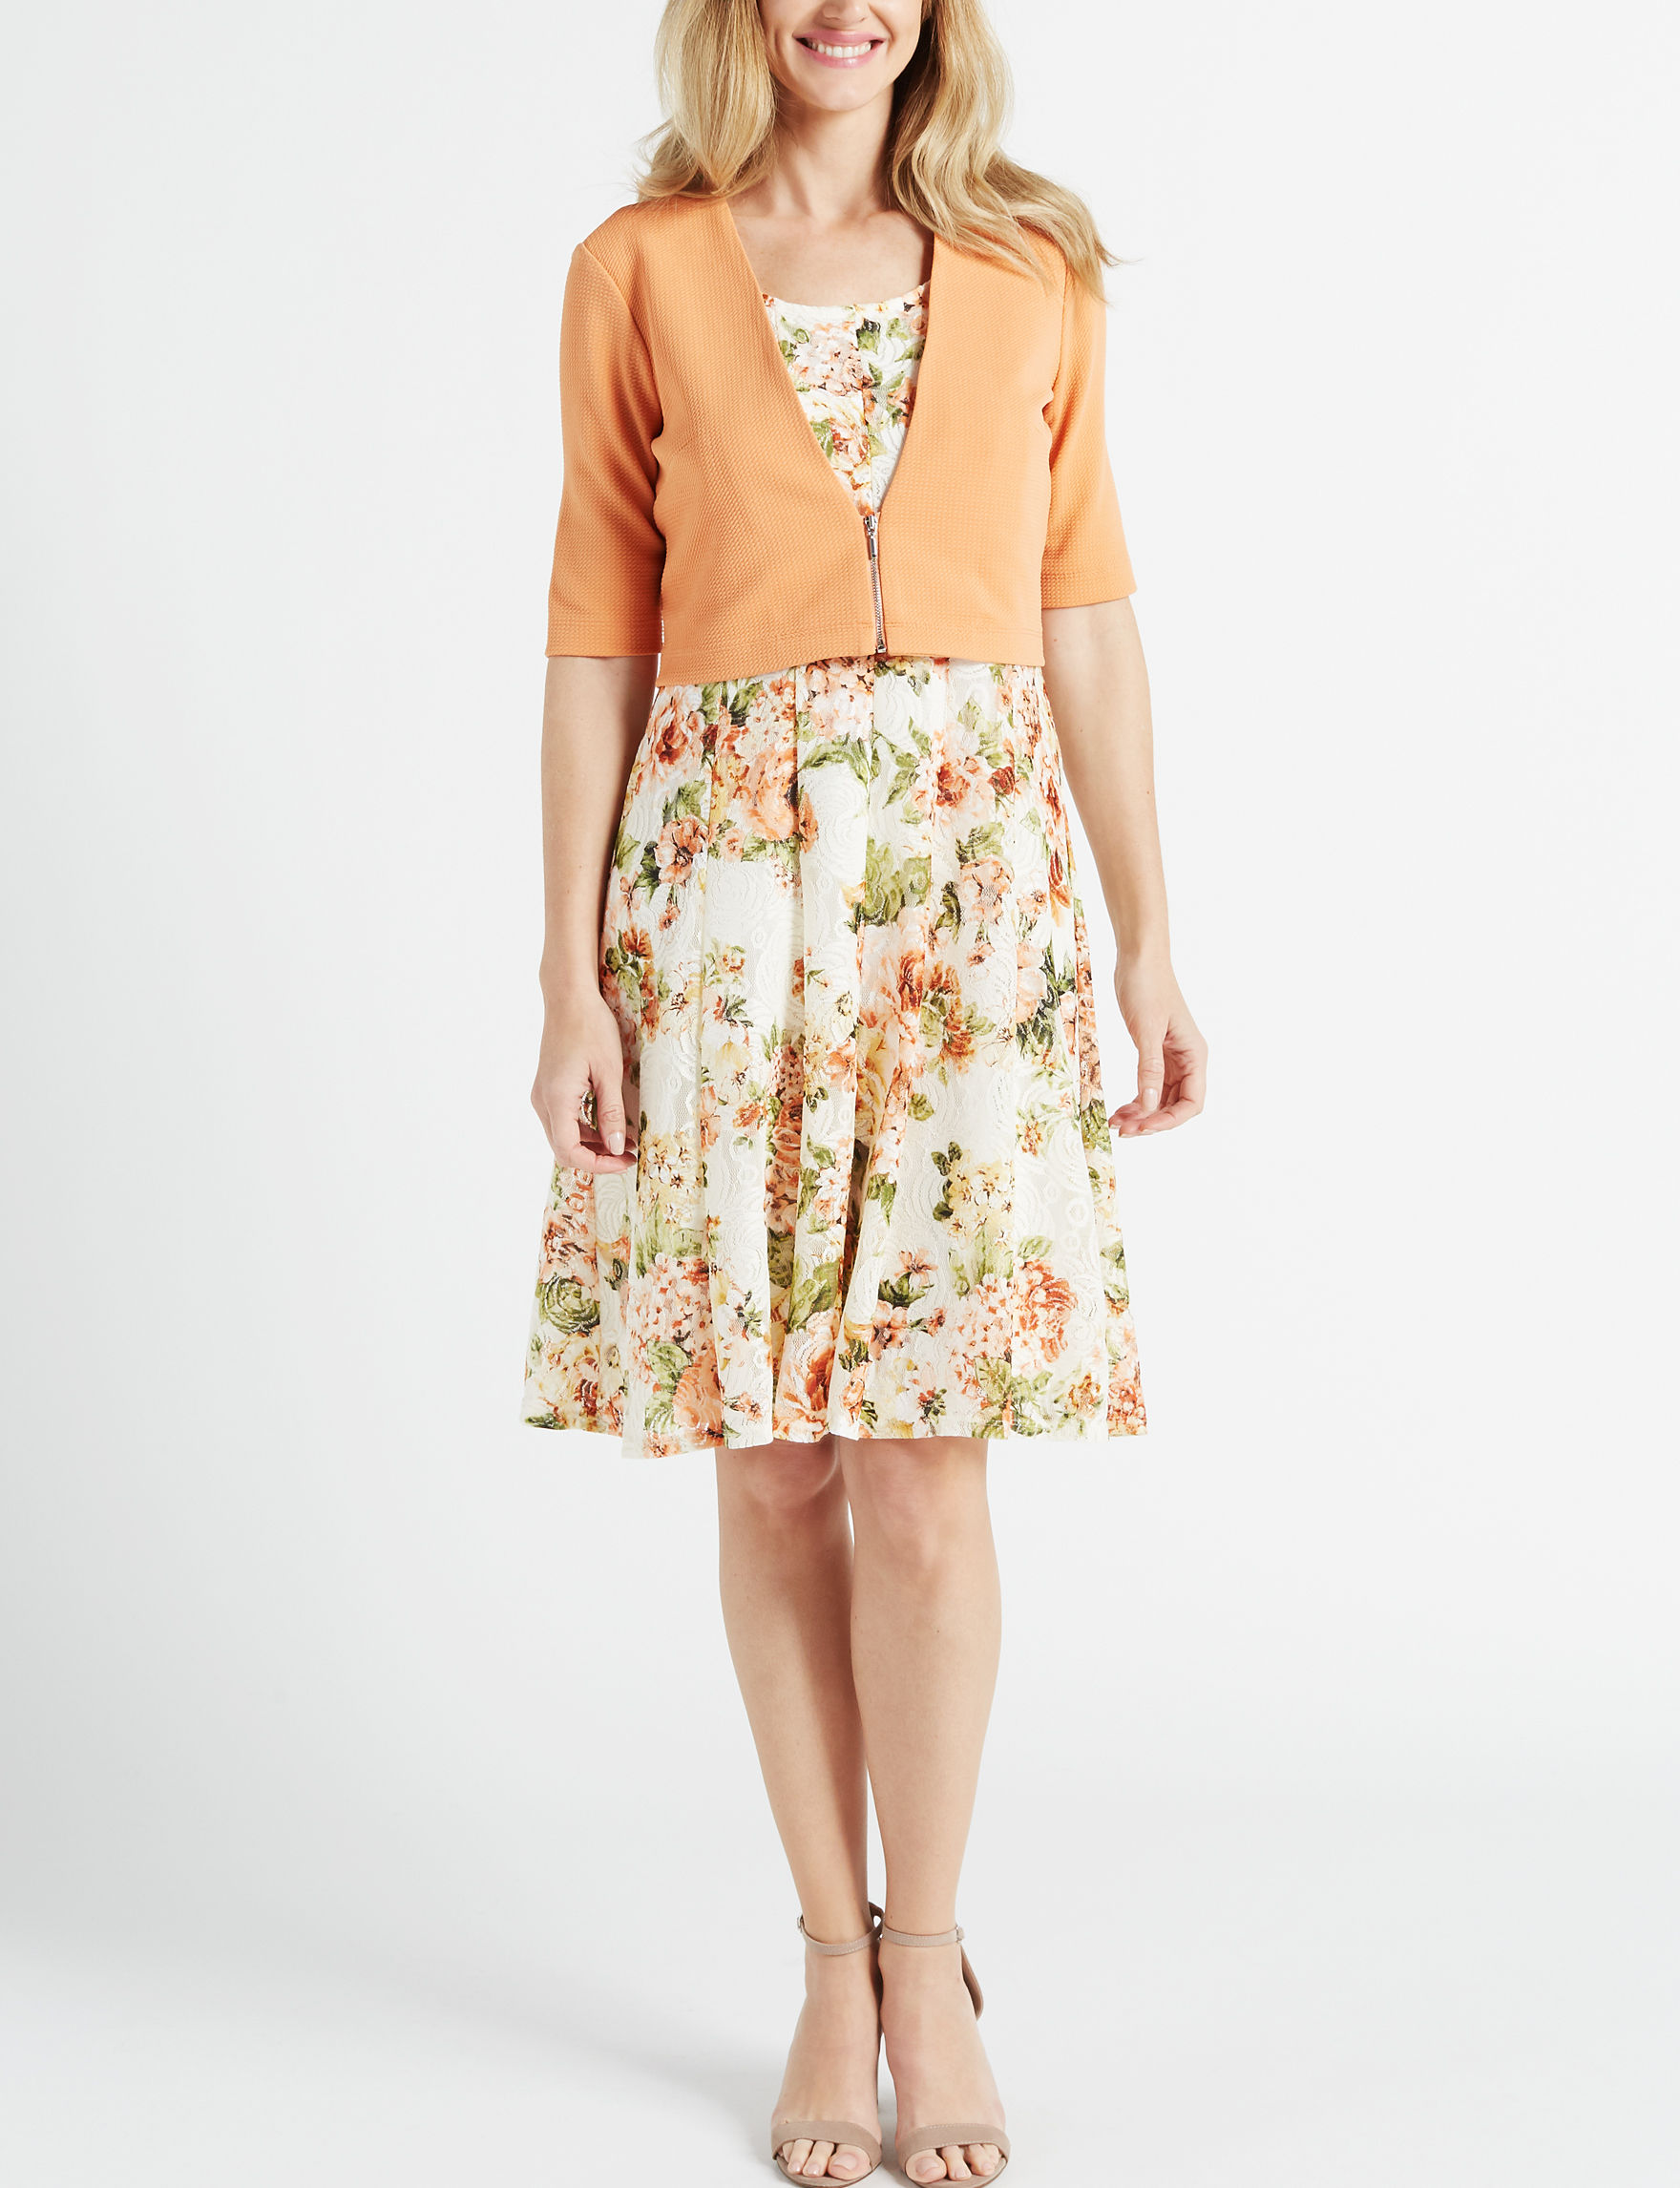 Perceptions Coral Multi Everyday & Casual Jacket Dresses